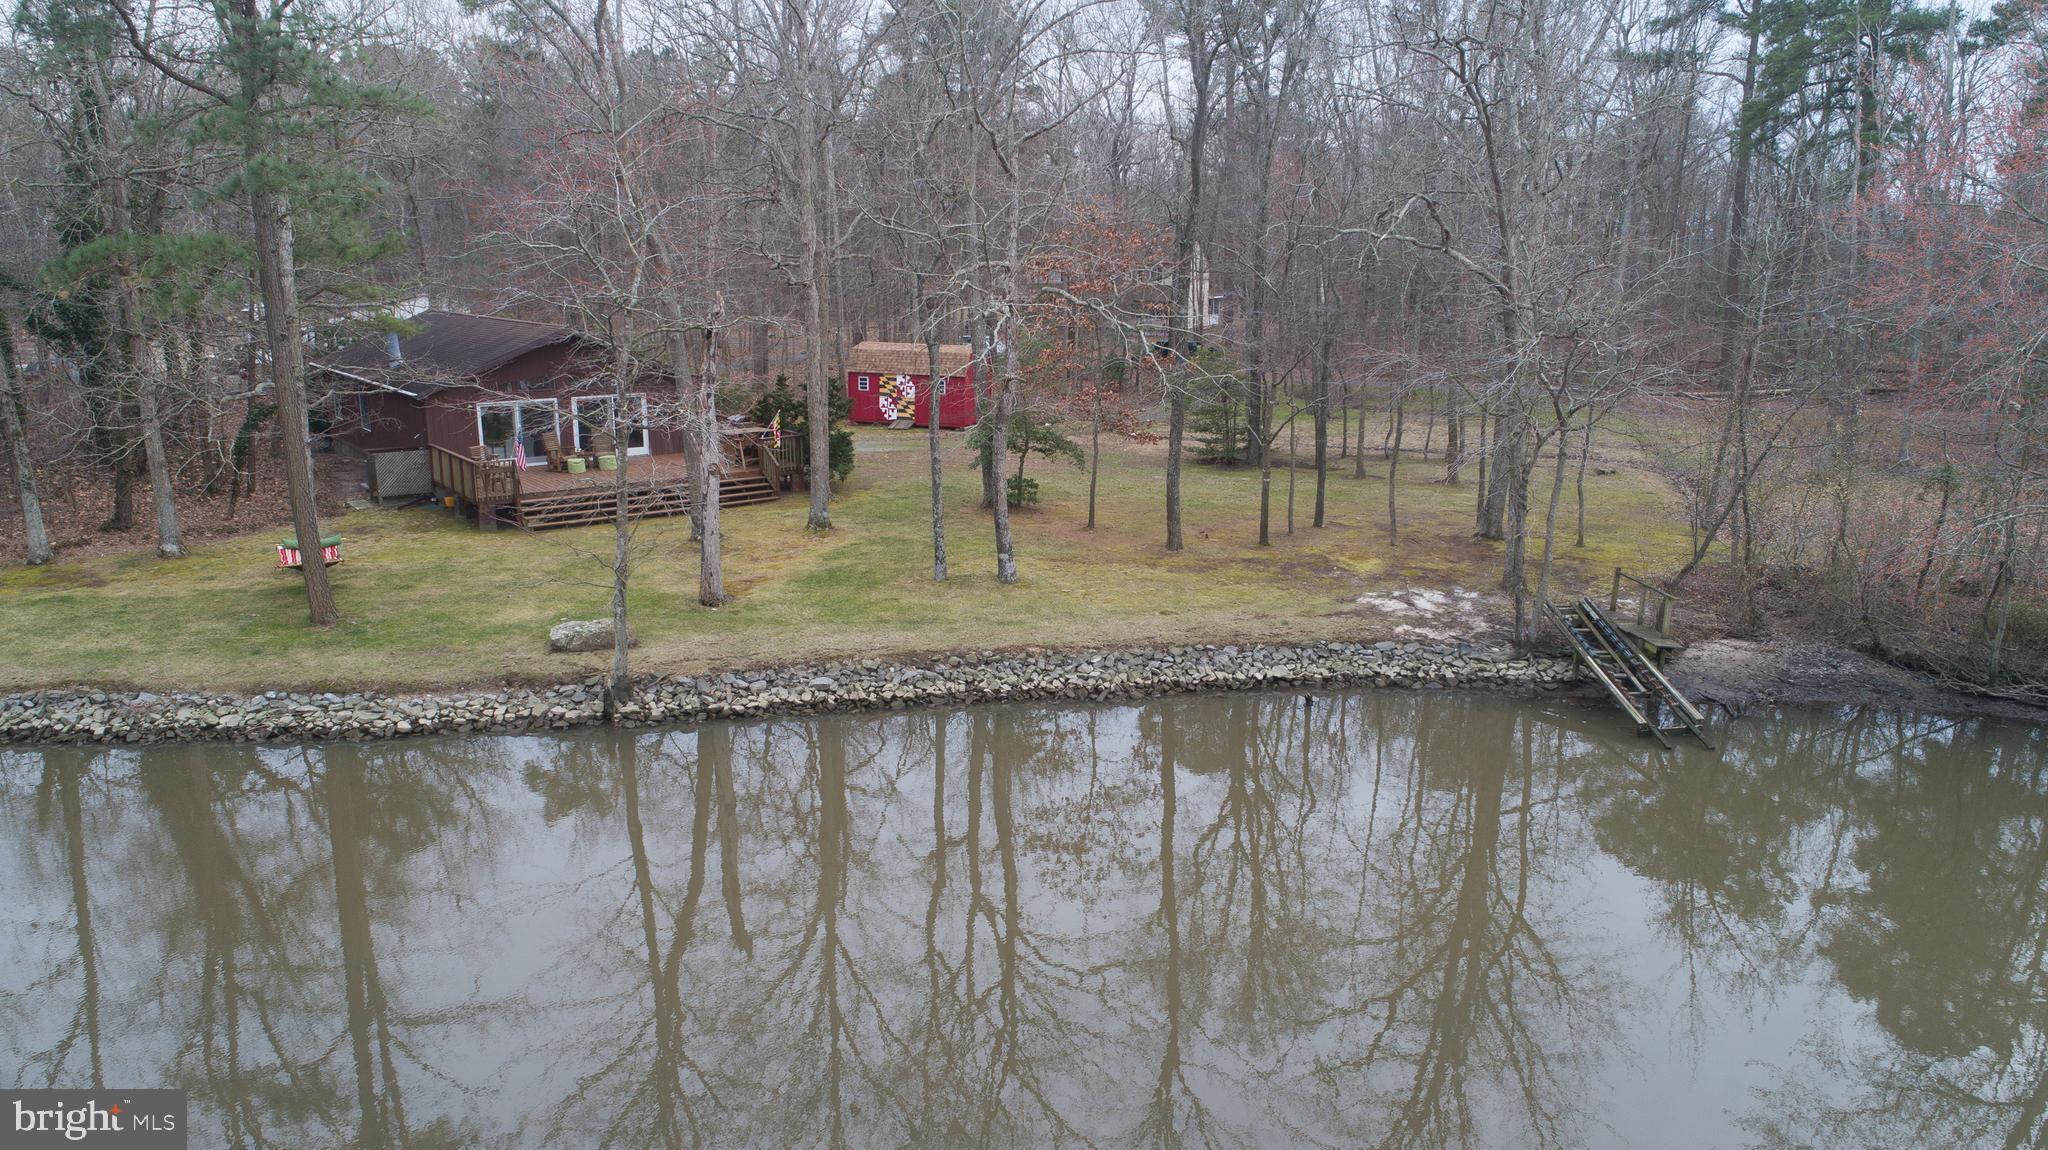 Nestled among mature  trees,  you'll  enjoy beautiful water views over the Choptank  from this 3 BR home.  Centrally located ,  this property offers quick access to Easton and all Mid Shore locations.   Wood floors throughout , deck, pellet stove, and a granite kitchen are a few of the upgrades. Protected shoreline.  Launching ramp for jet skis, kayaks, SUP, canoes.  Outdoor shower.  A great place to  star gaze and listen to the frogs!